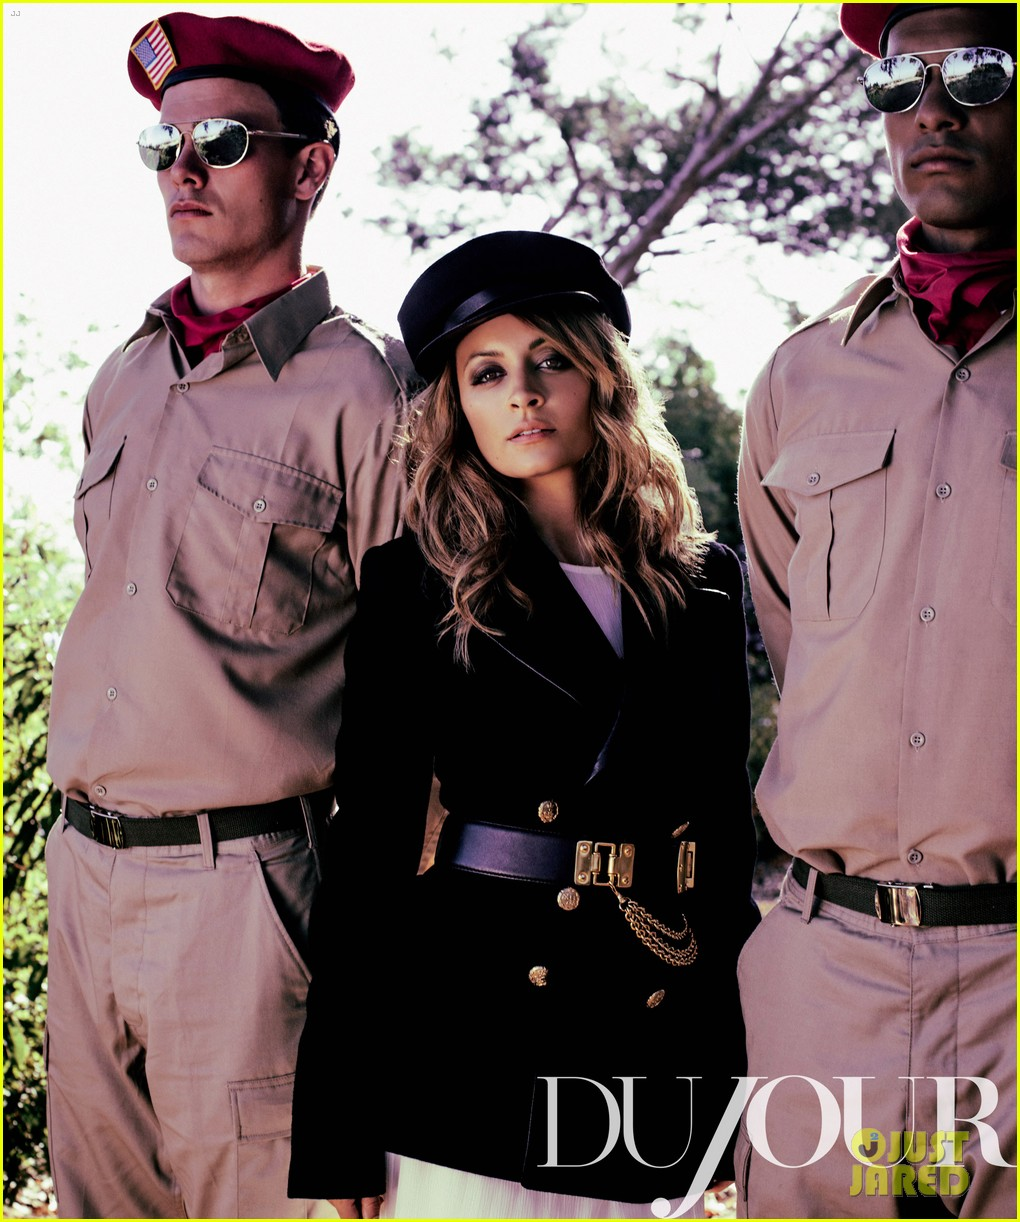 nicole richie covers dujour october 2012 05